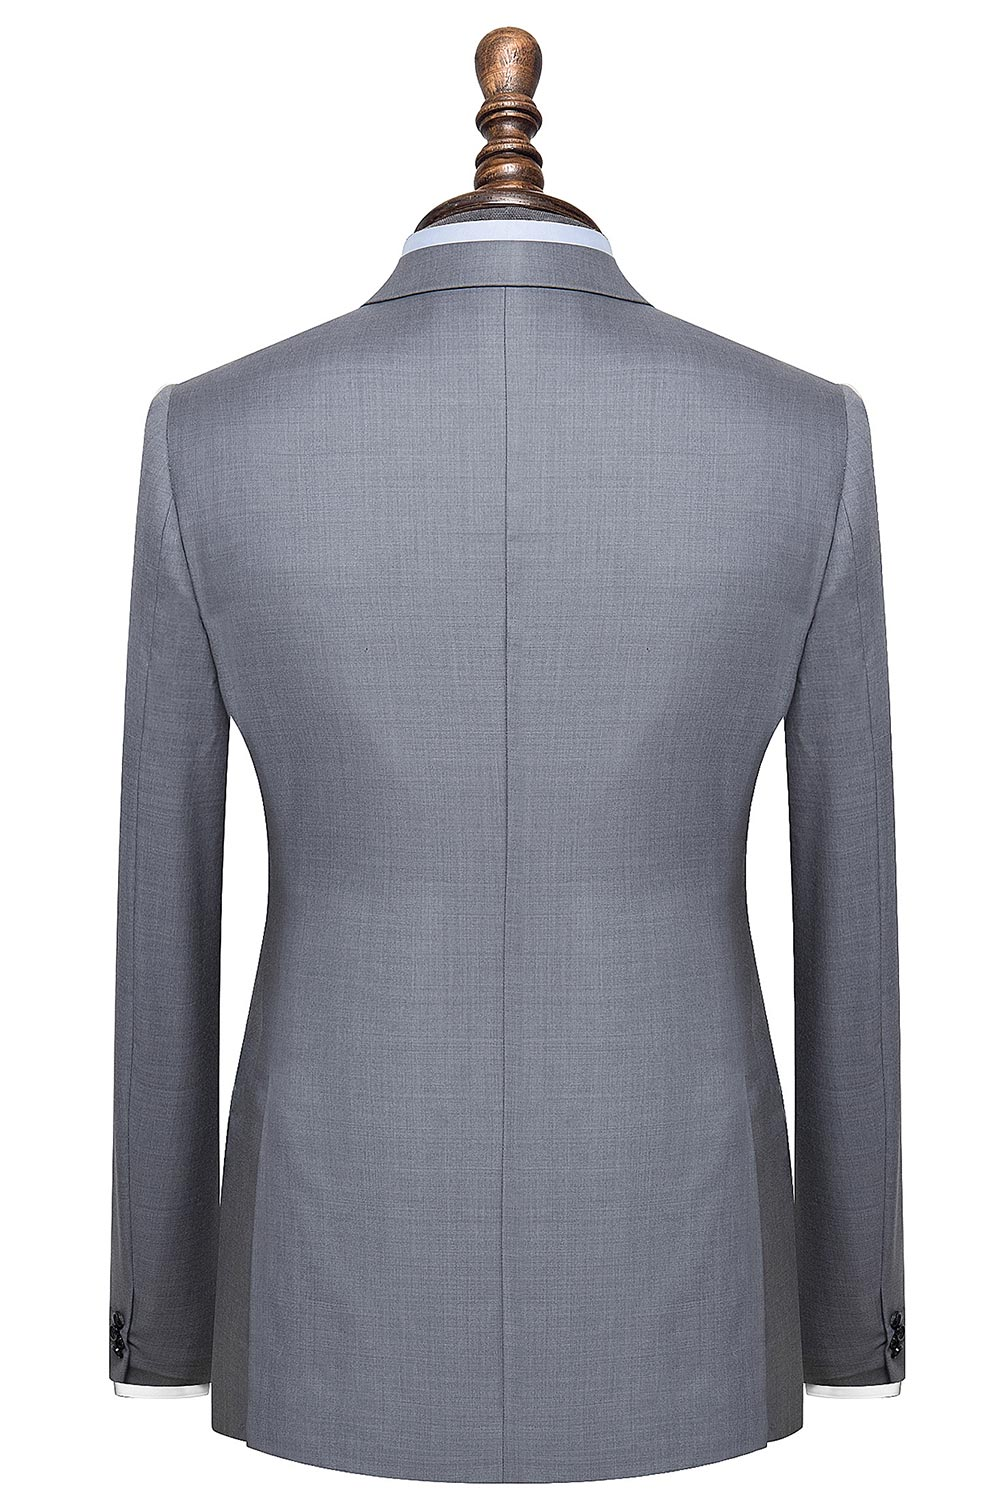 InStitchu Collection The Oldham mens suit